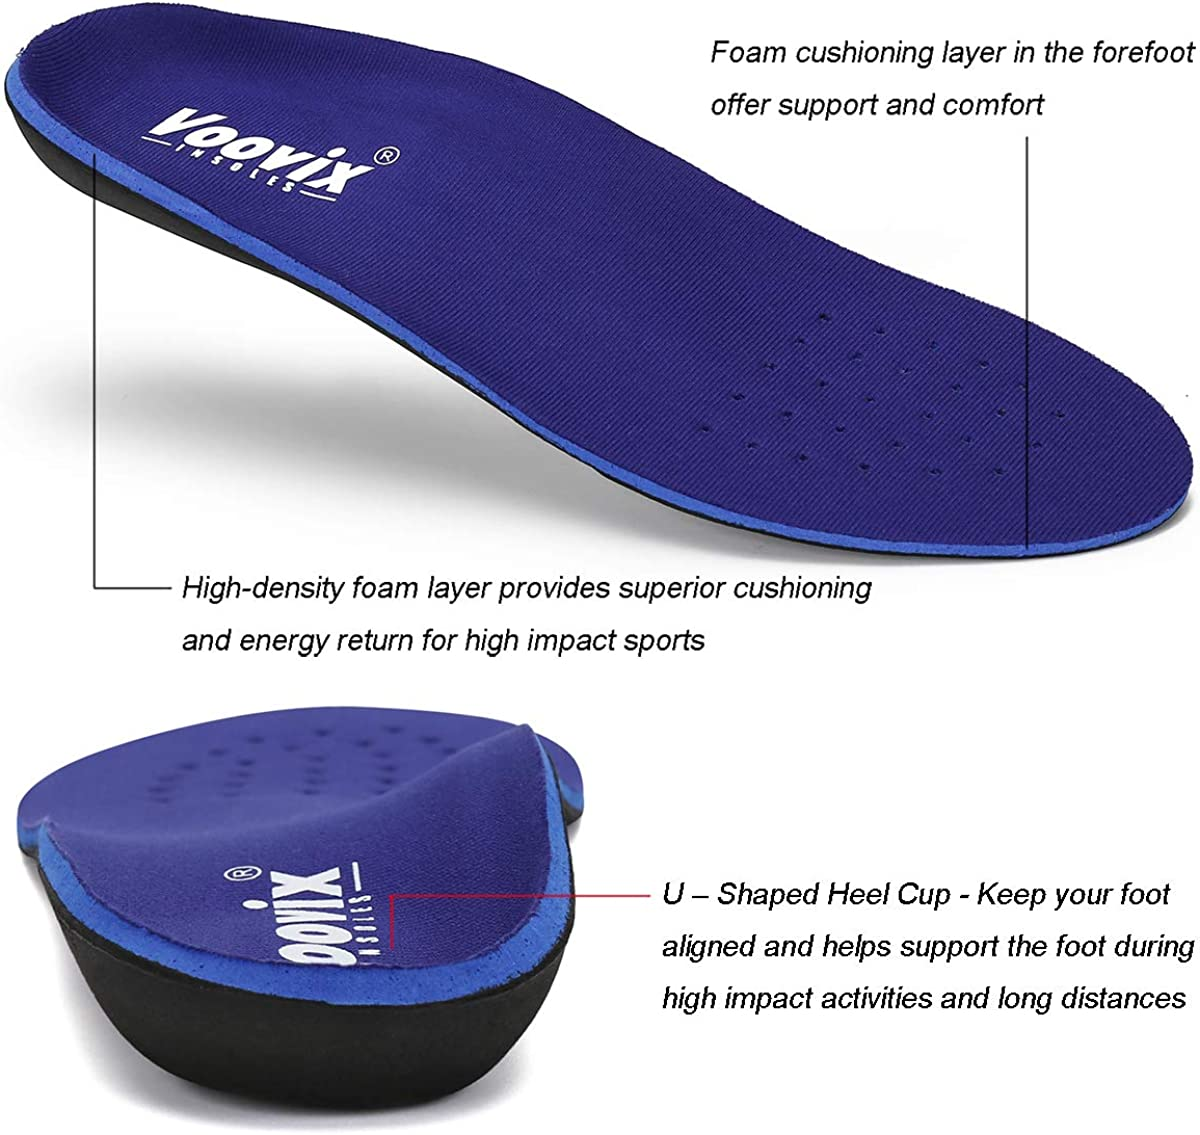 Arch Support Orthotic Insert Relieve Flat Feet Voovix Plantar Fasciitis Feet Insoles Shock Absorptation /& Cushioning Breathable Insole for Running /& Walking Foot Pain for Men Women Heel Spurs